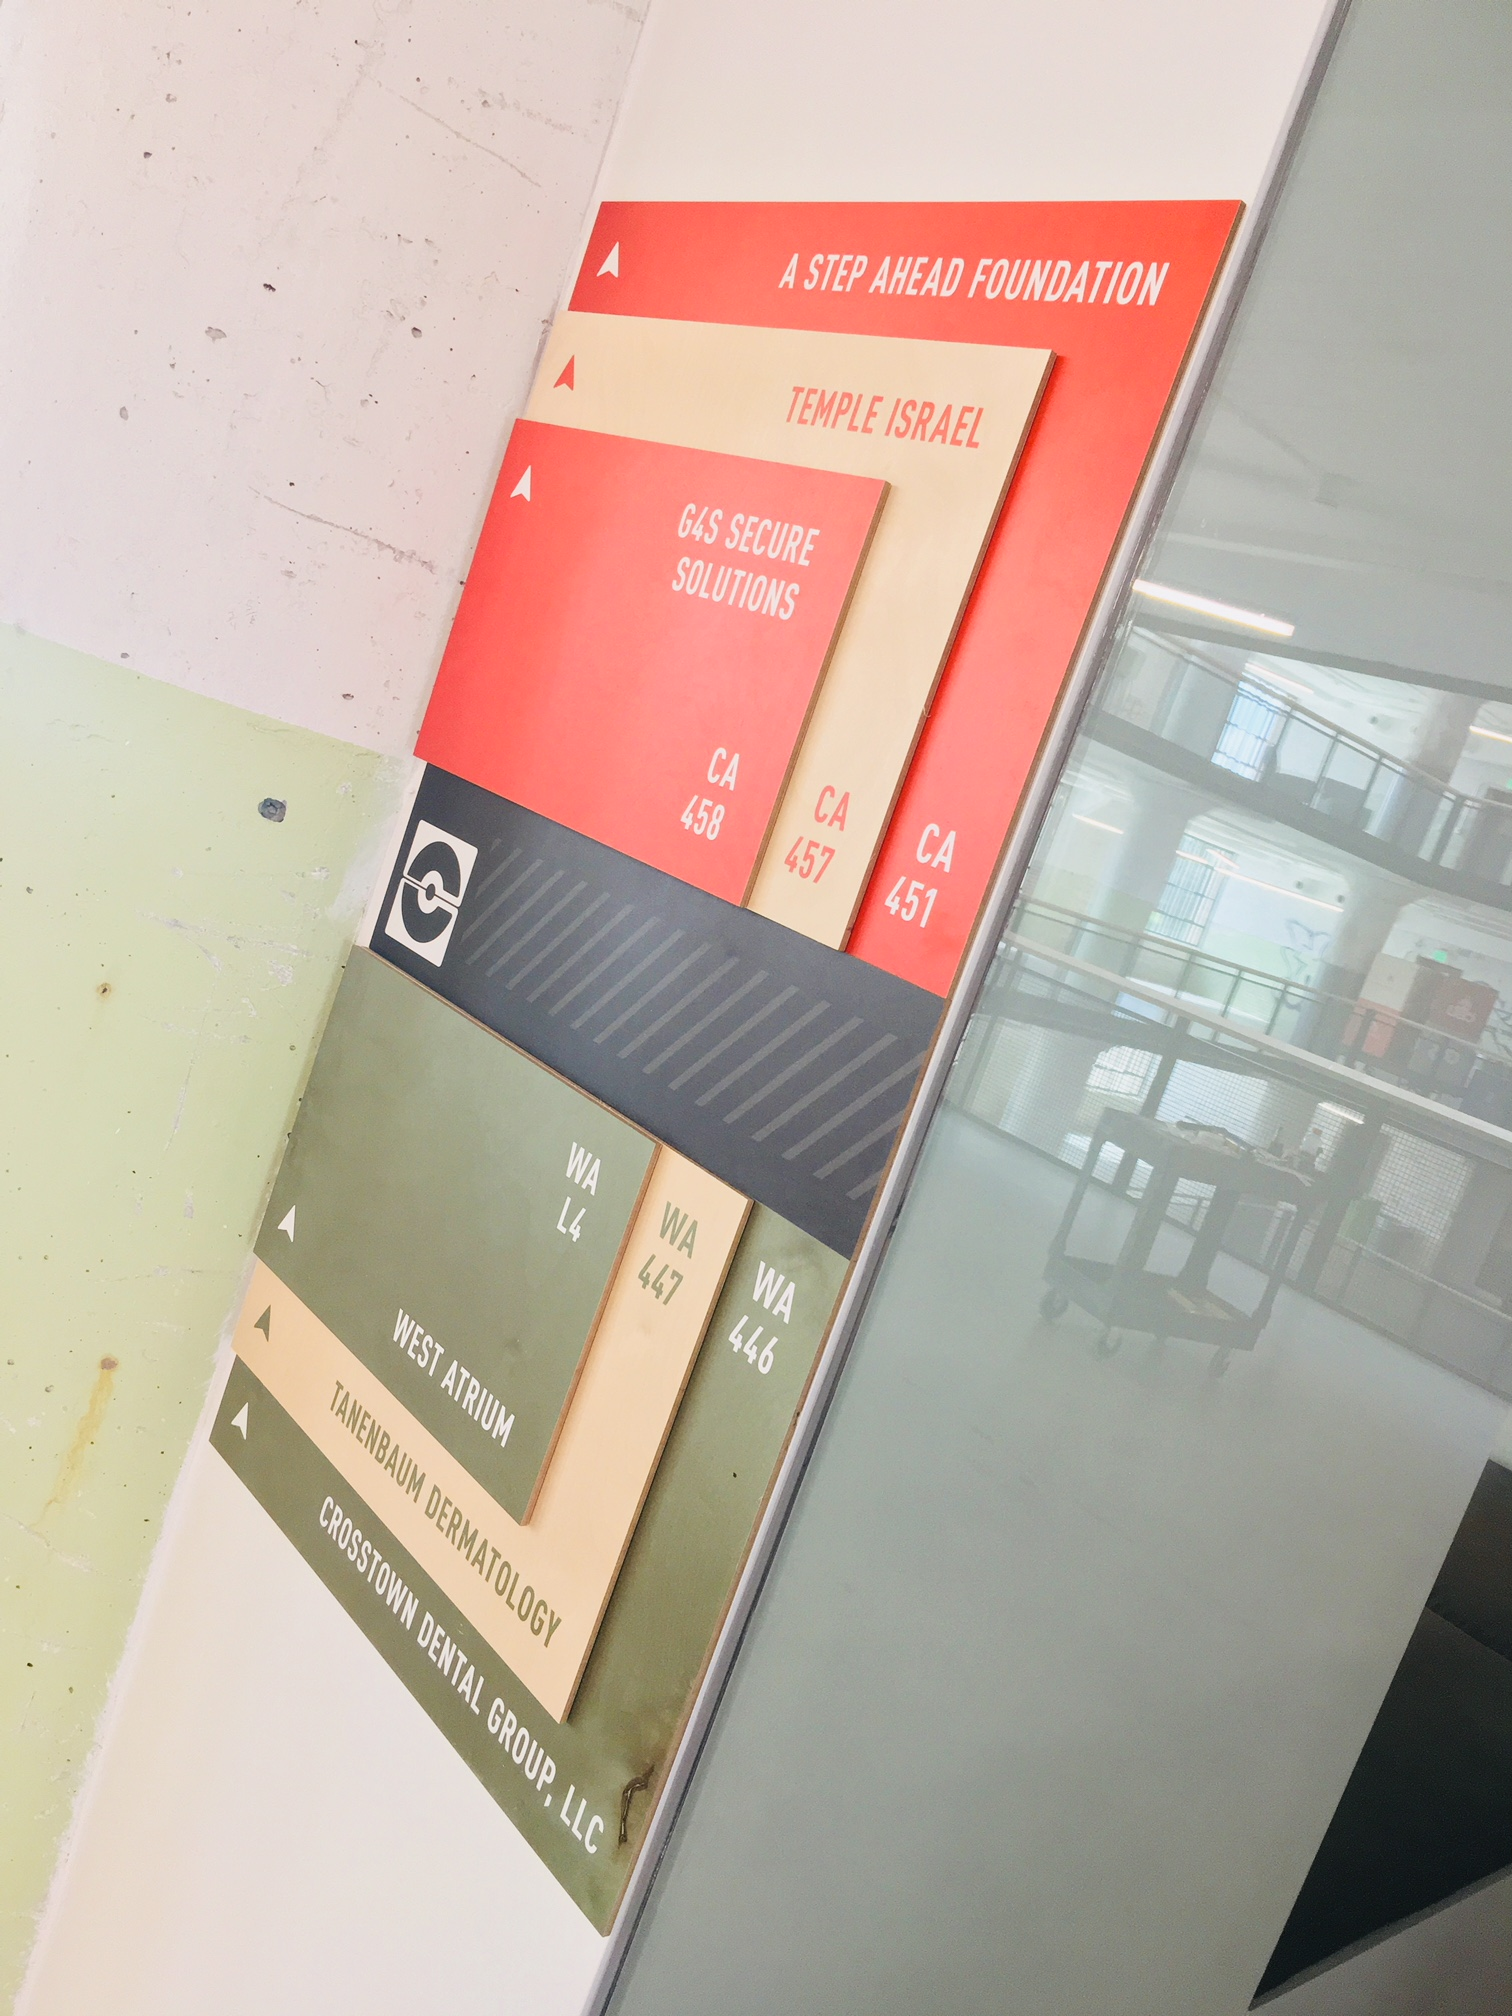 Copy of Crosstown Concourse Wayfinding